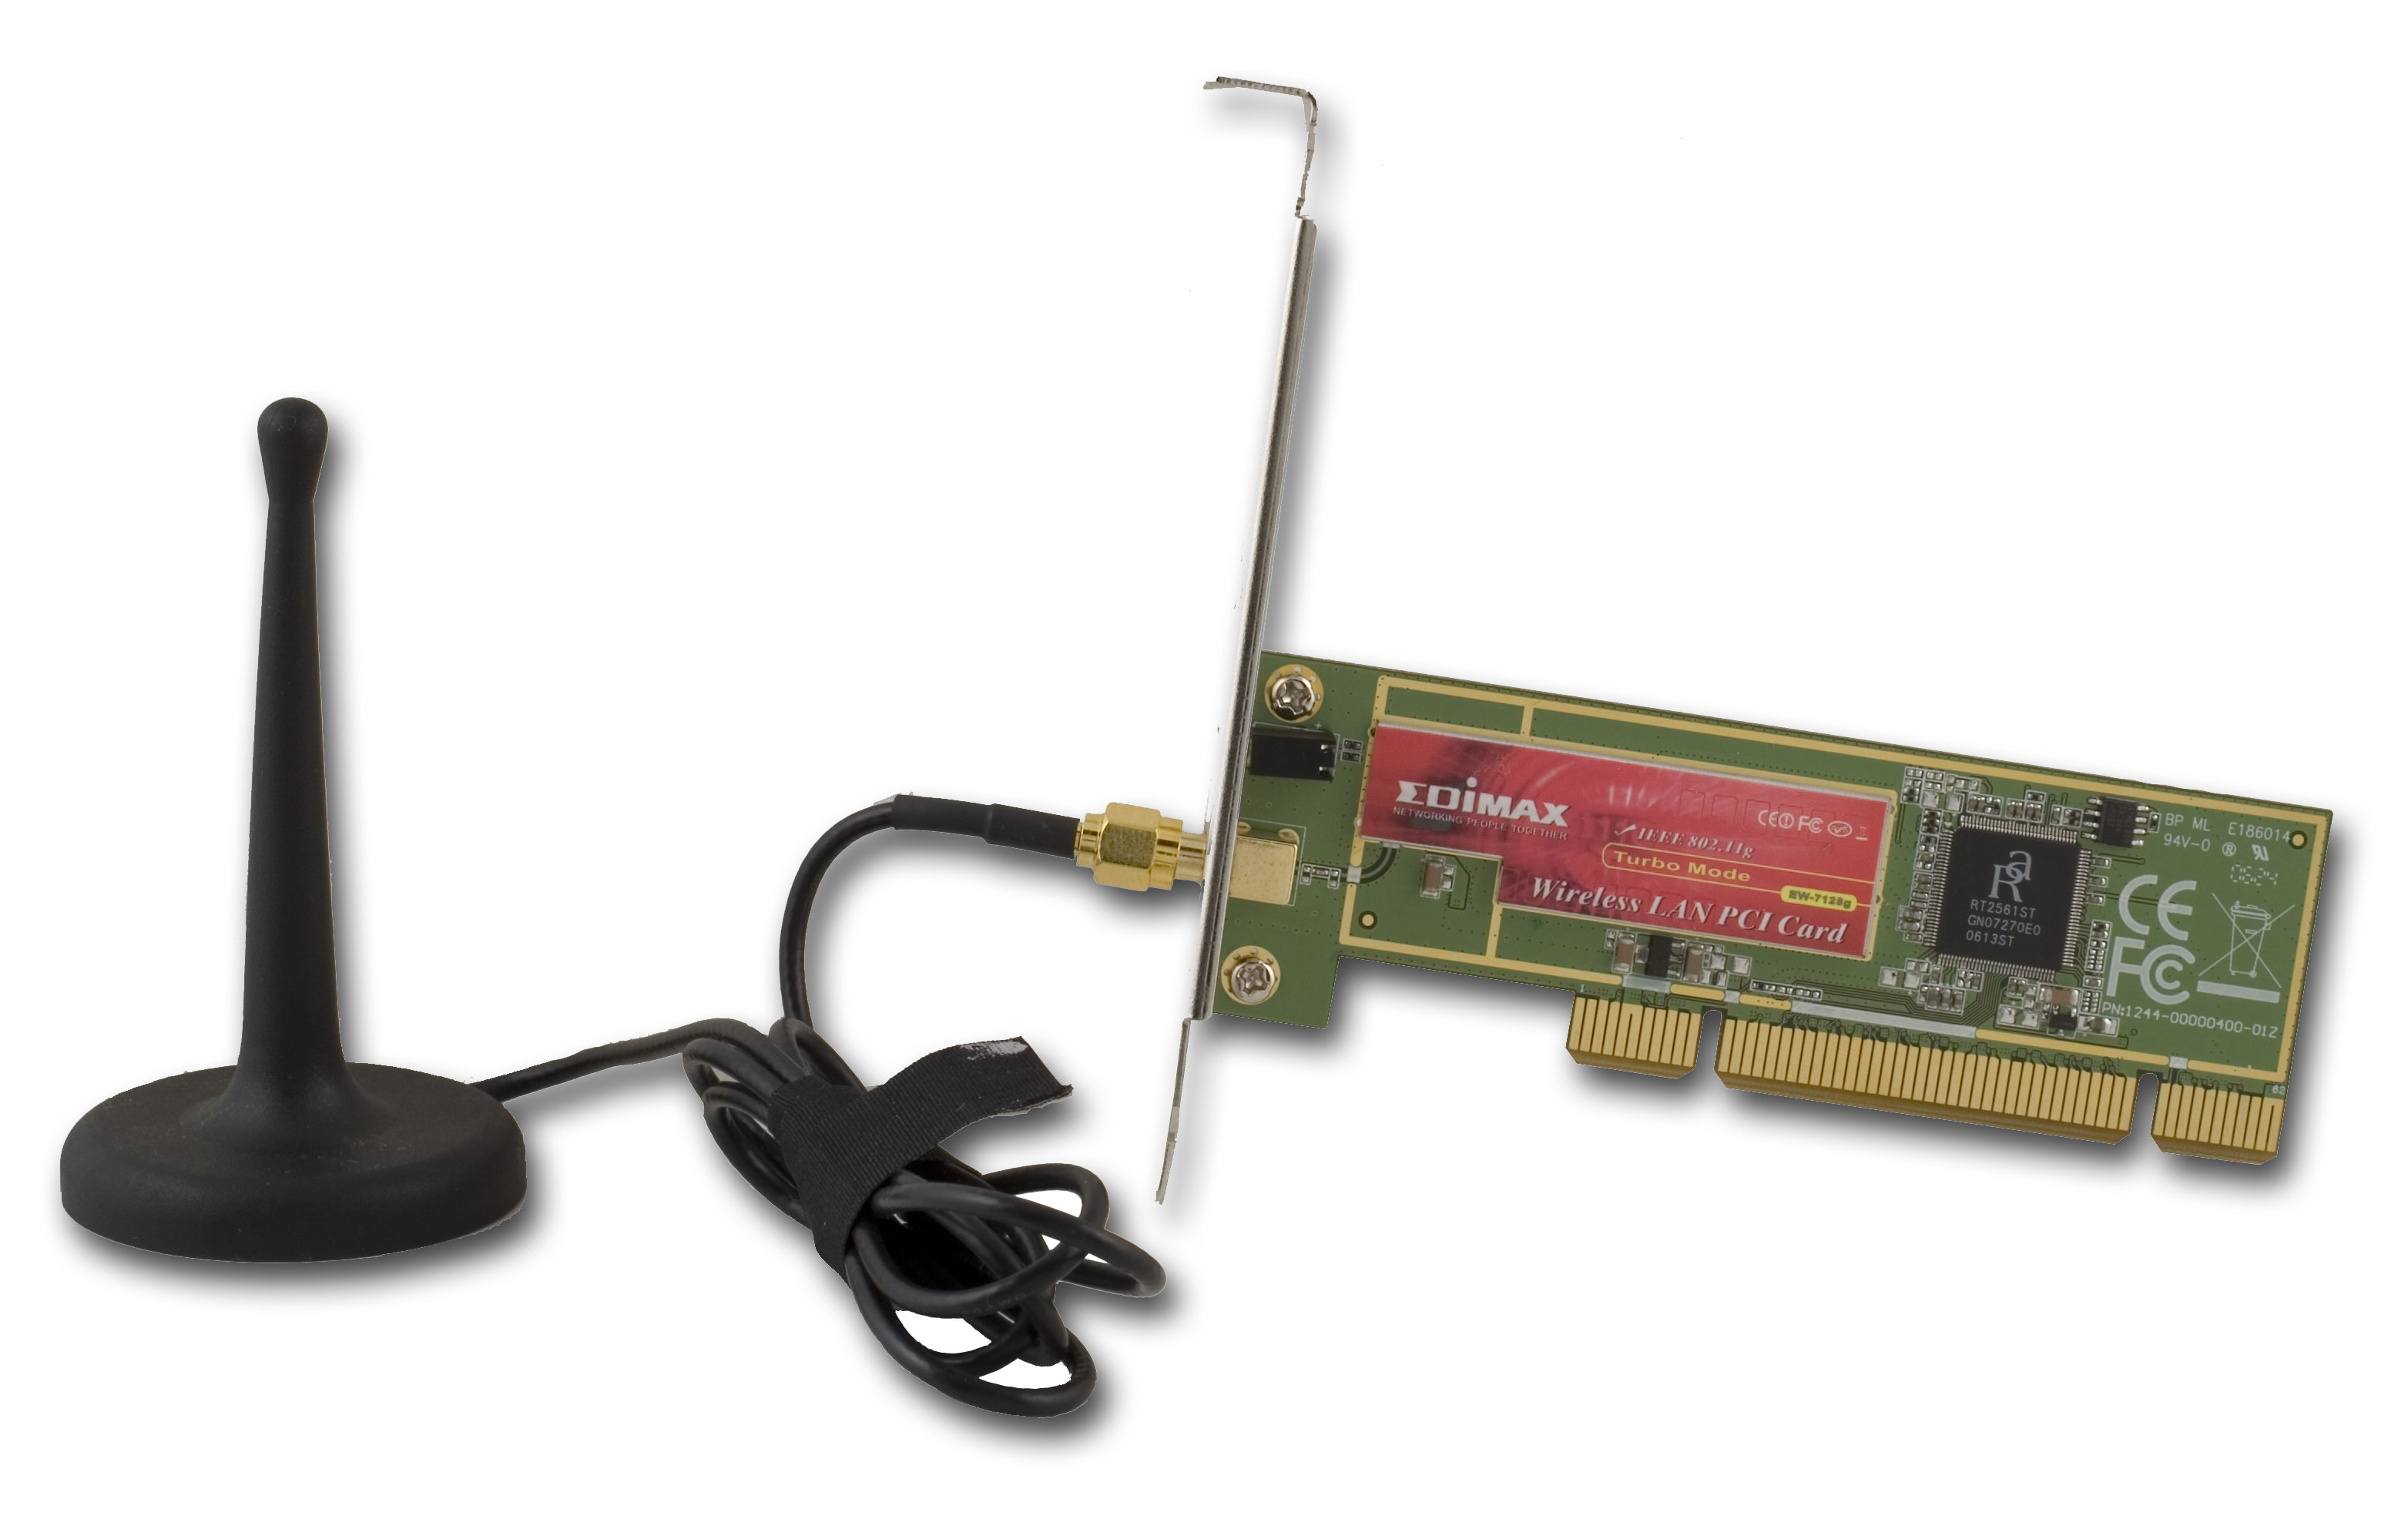 EDIMAX EW-7128G WIRELESS CARD DRIVER FOR WINDOWS 8